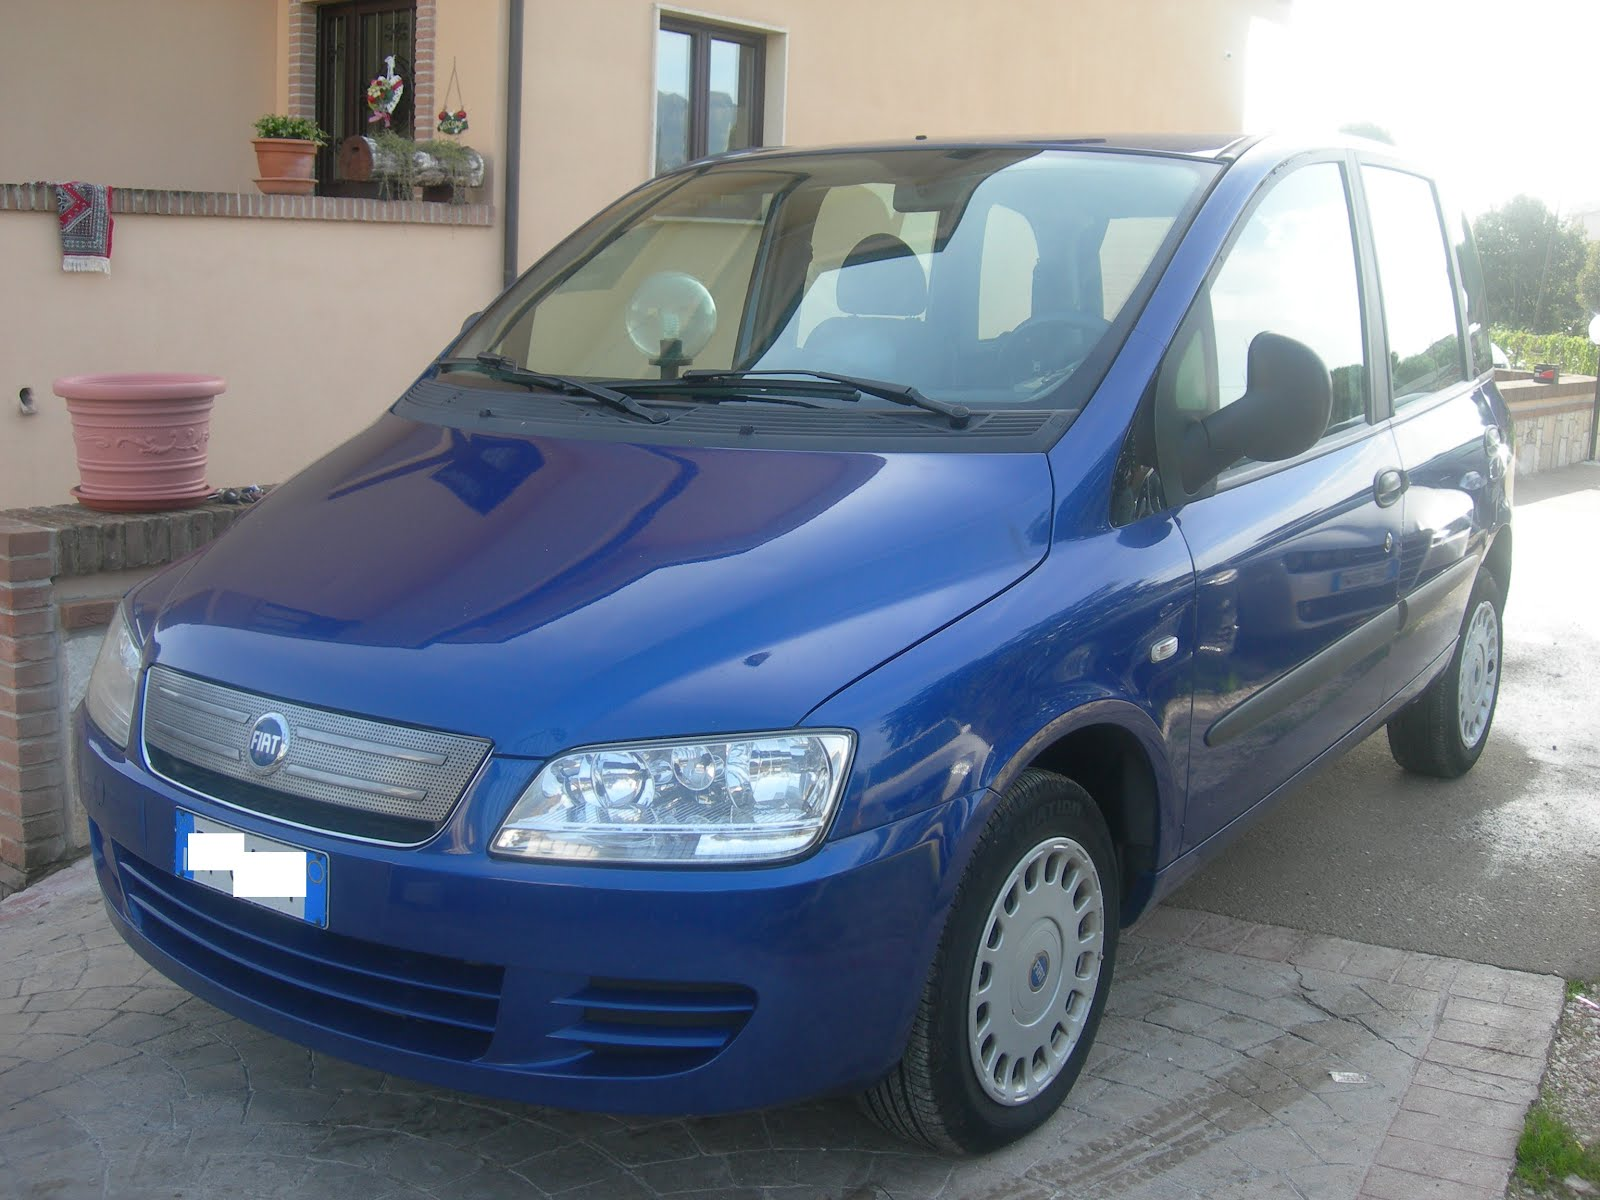 Fiat Multipla 1.6 Natural Power Metano anno 2006 Prezzo 4.500,00 euro